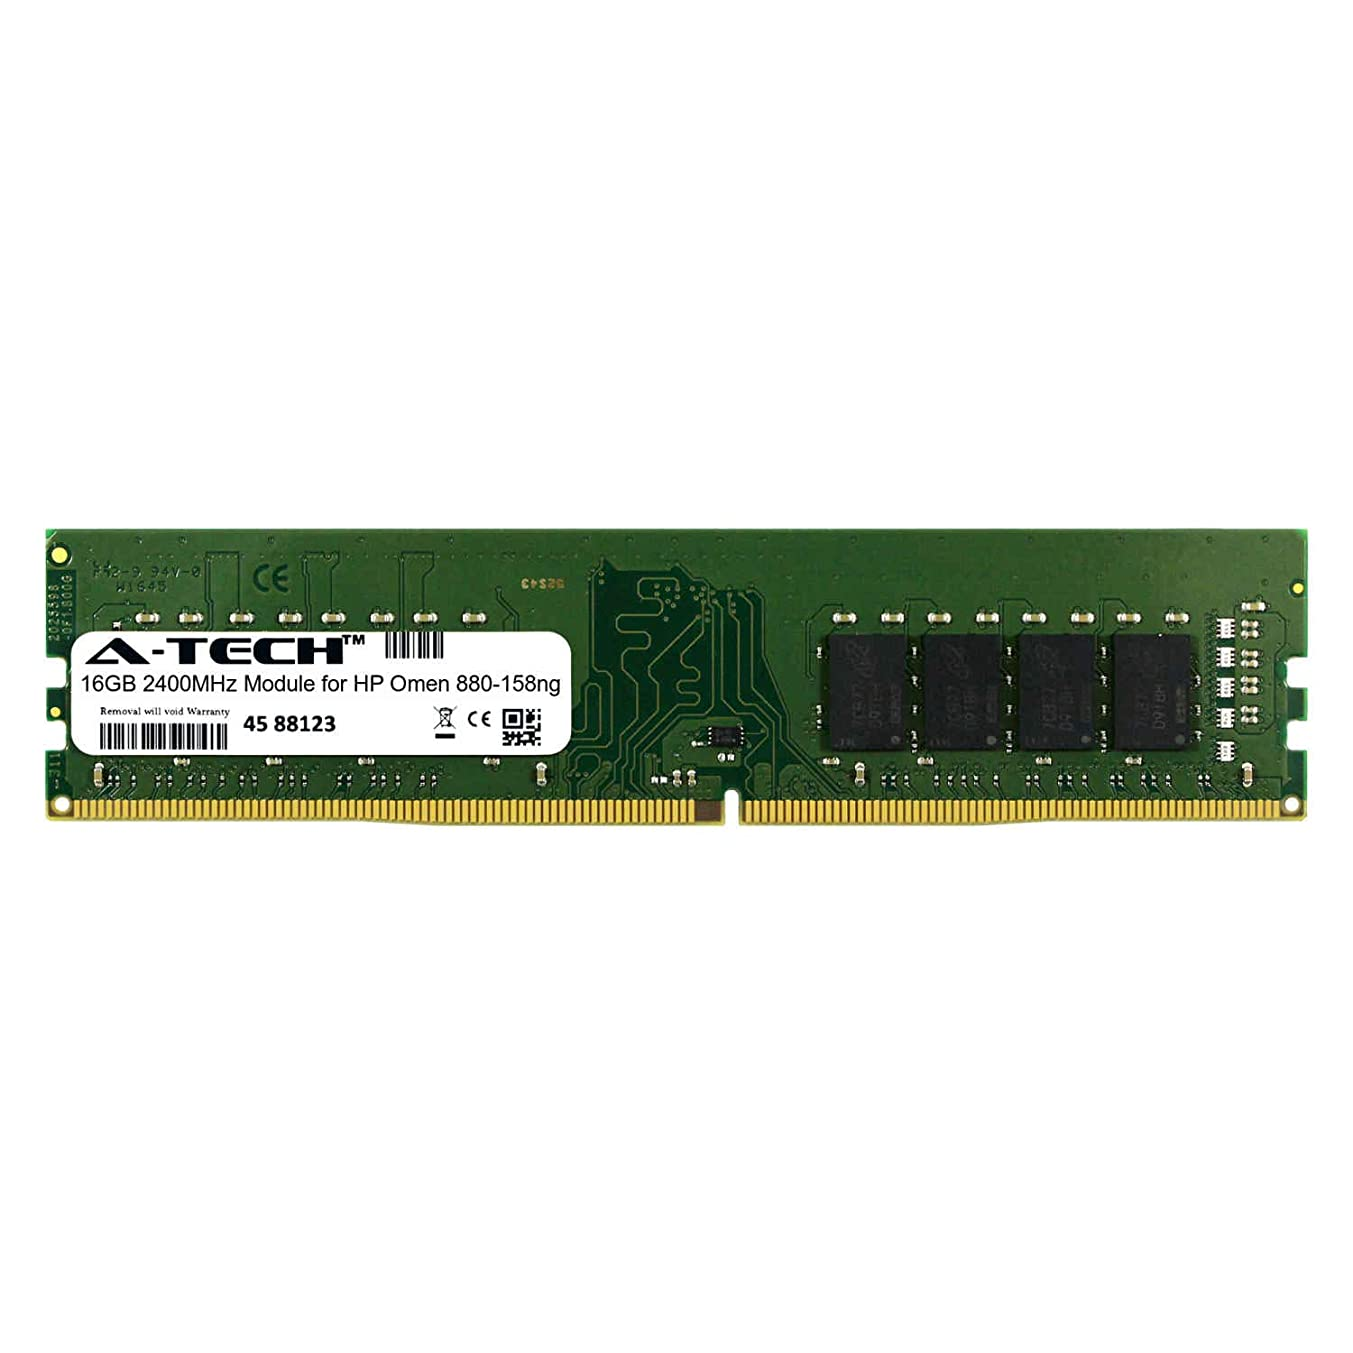 A-Tech 16GB Module for HP Omen 880-158ng Desktop & Workstation Motherboard Compatible DDR4 2400Mhz Memory Ram (ATMS282799A25822X1)